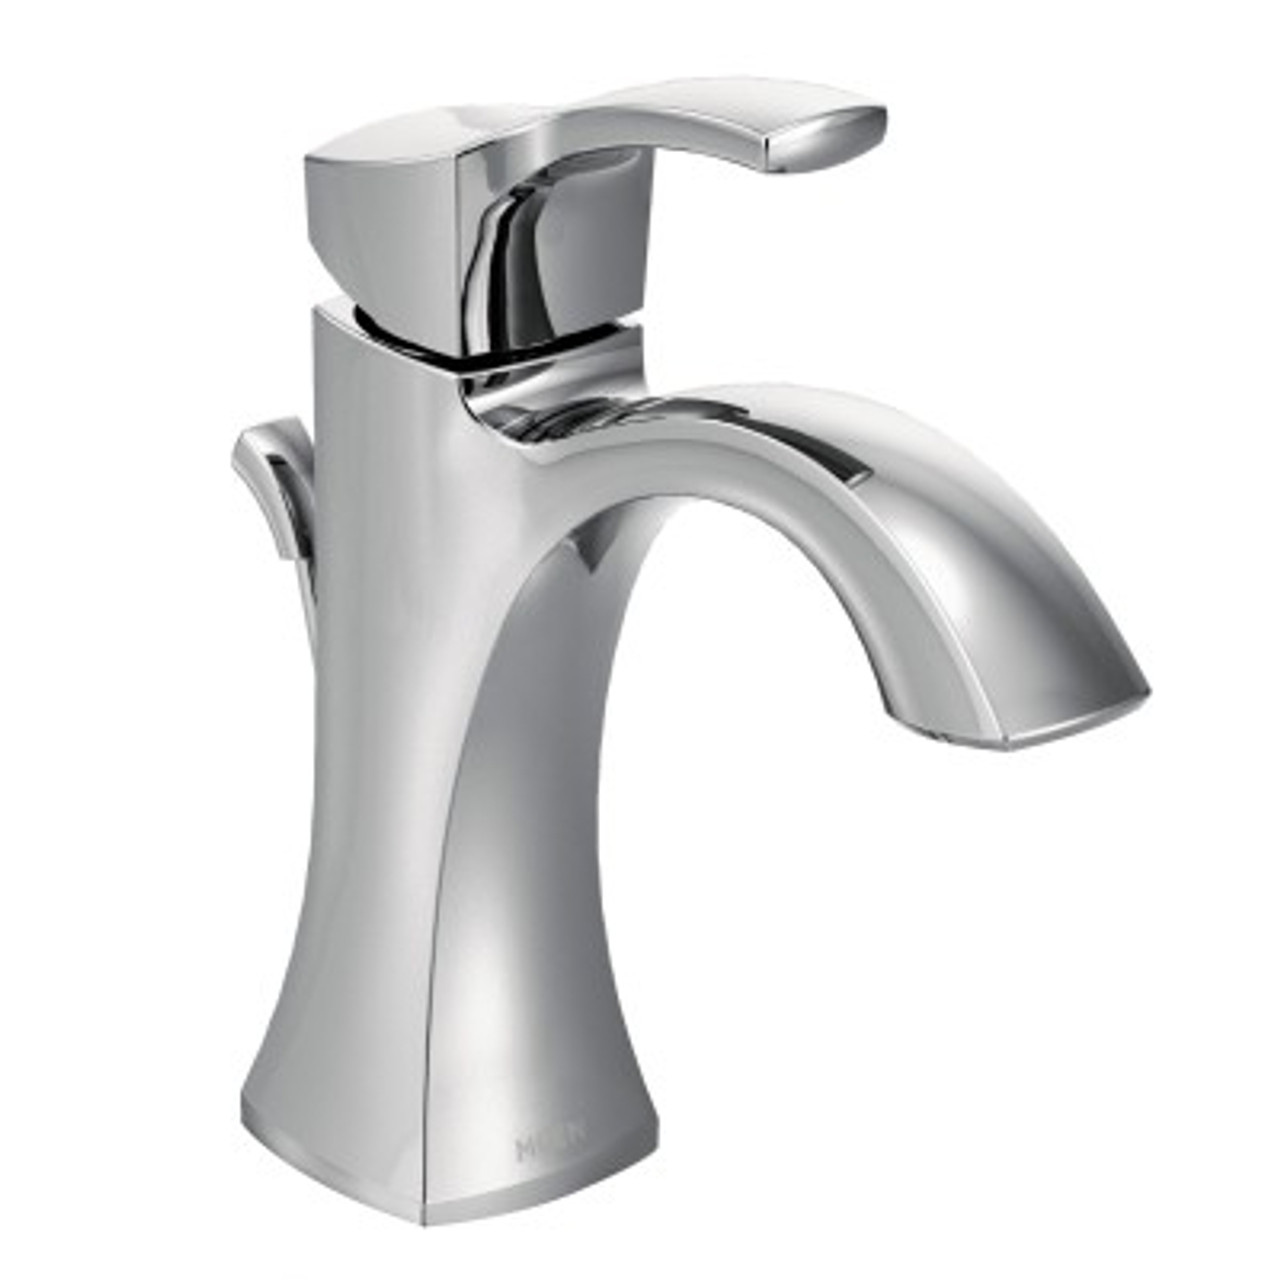 Moen Kingsley Bathroom Faucet Moen Voss One Handle High Arc Bathroom Faucet Chrome Finish